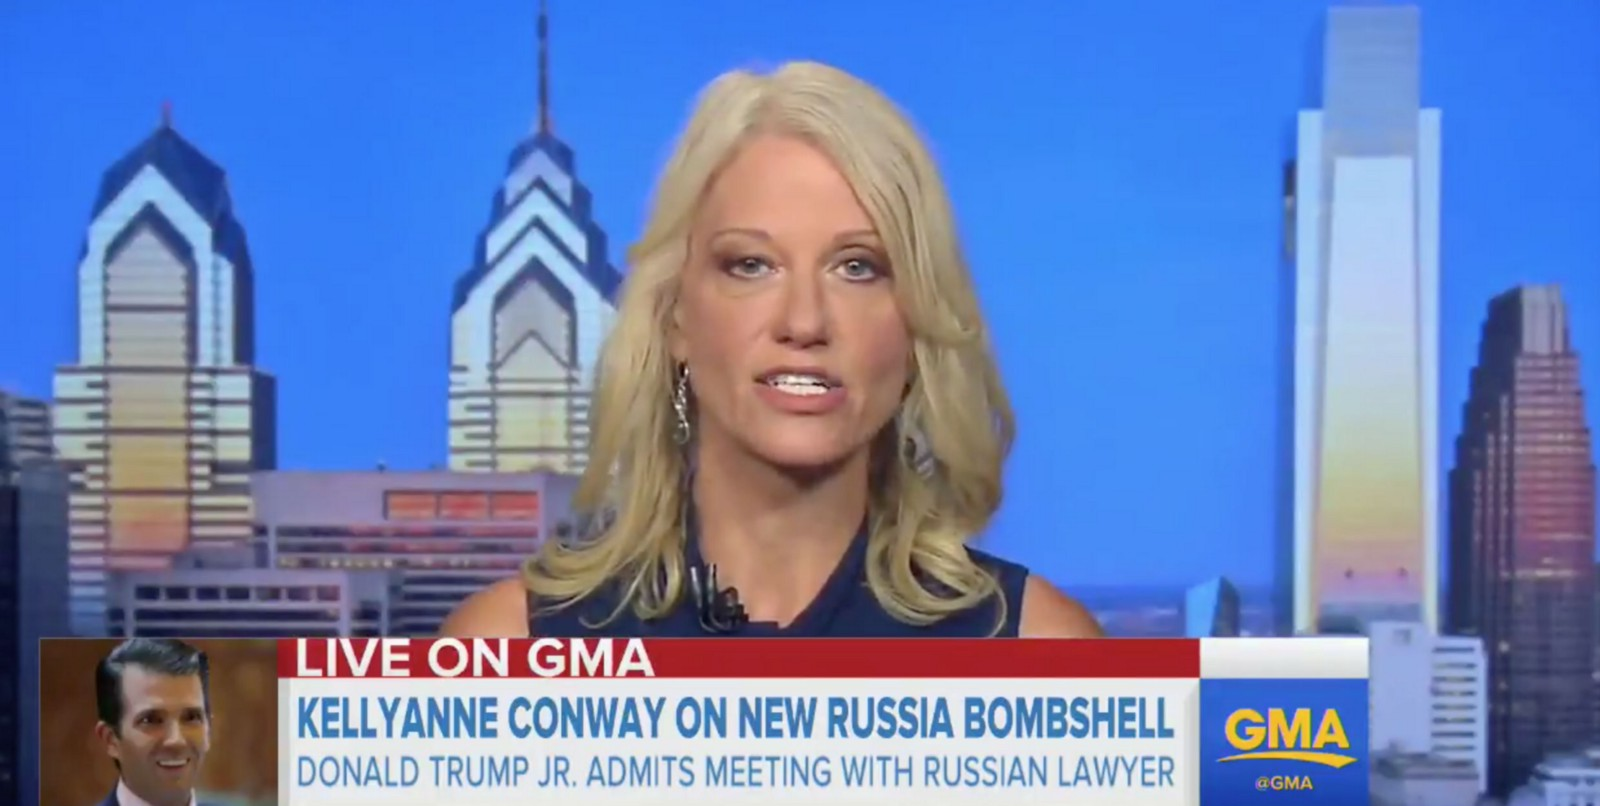 Conway on previous denials of Russian meetings: 'Disclosure forms have been amended'